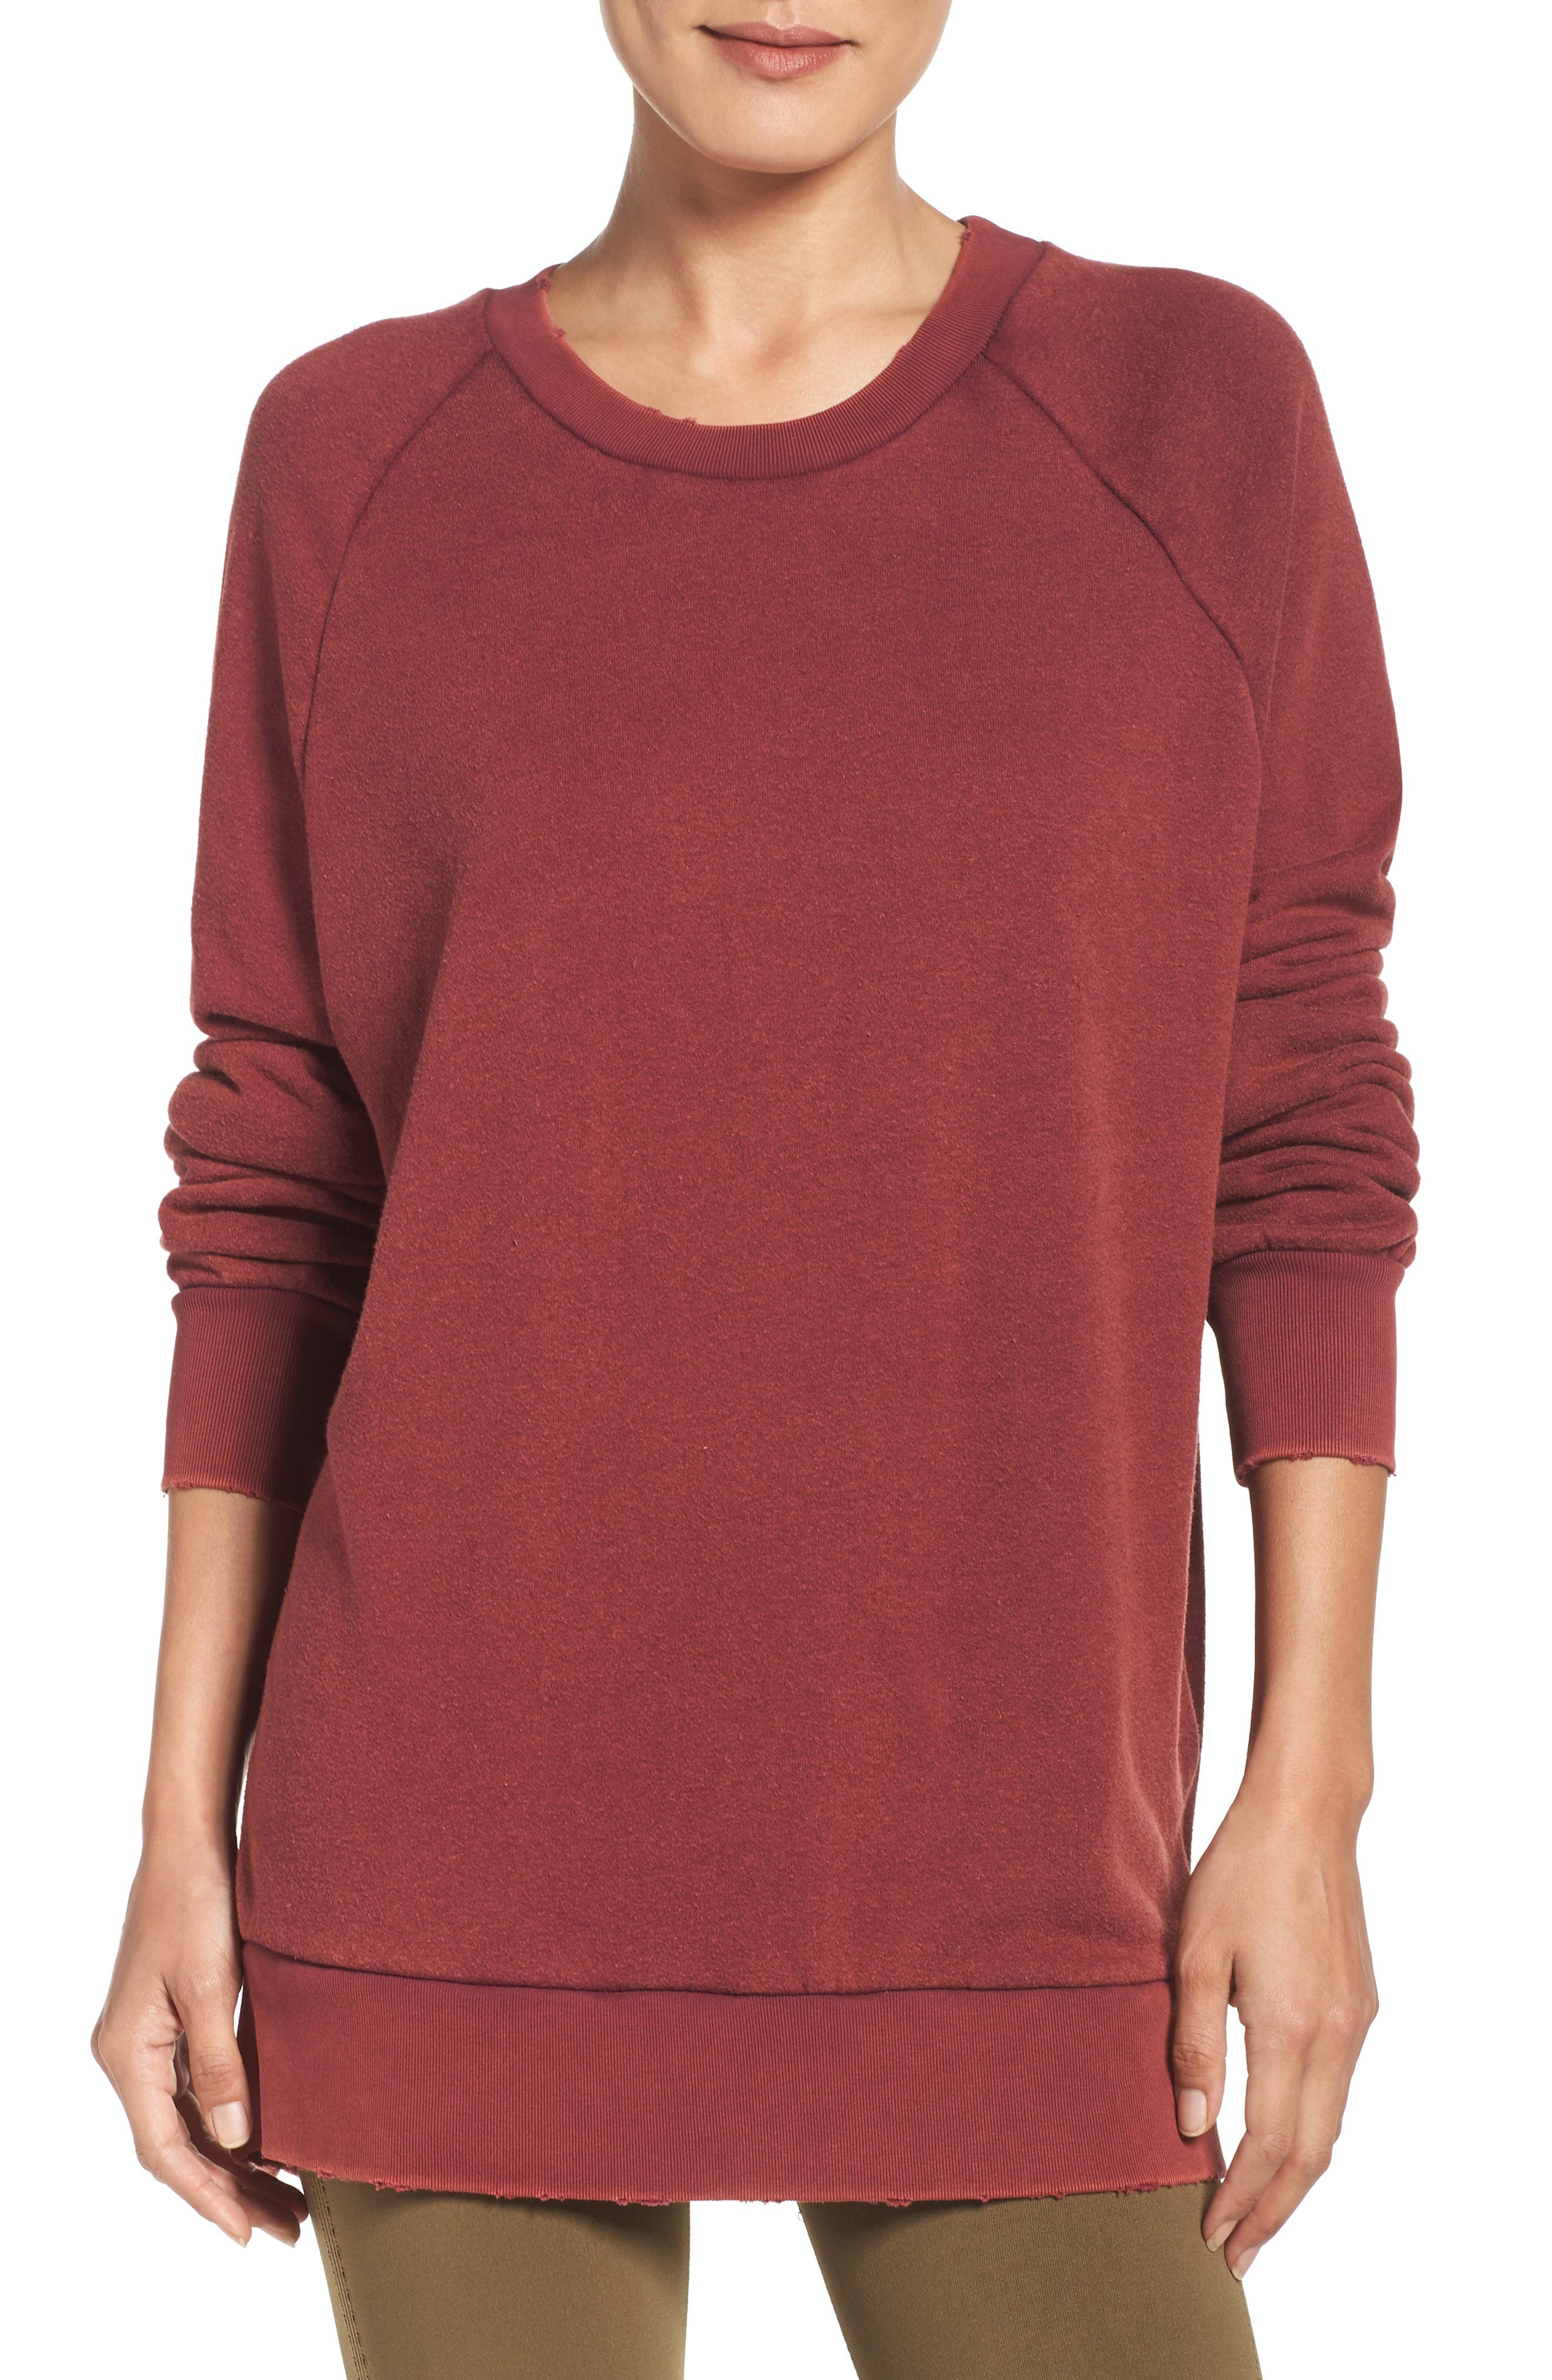 FREE PEOPLE FP Movement Rough & Tumble Sweatshirt